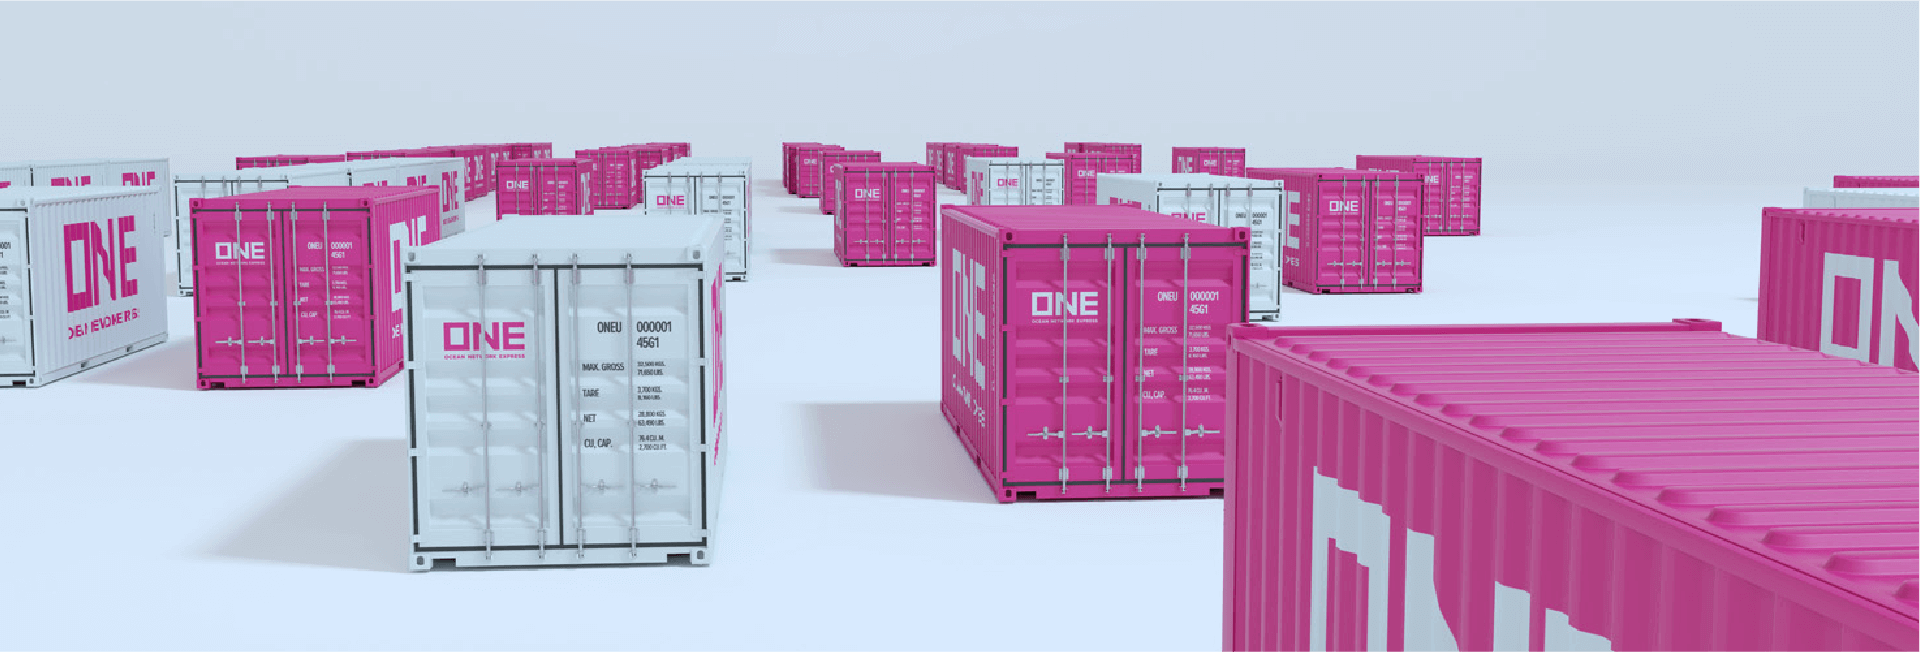 Slider3-one-containers-cgi